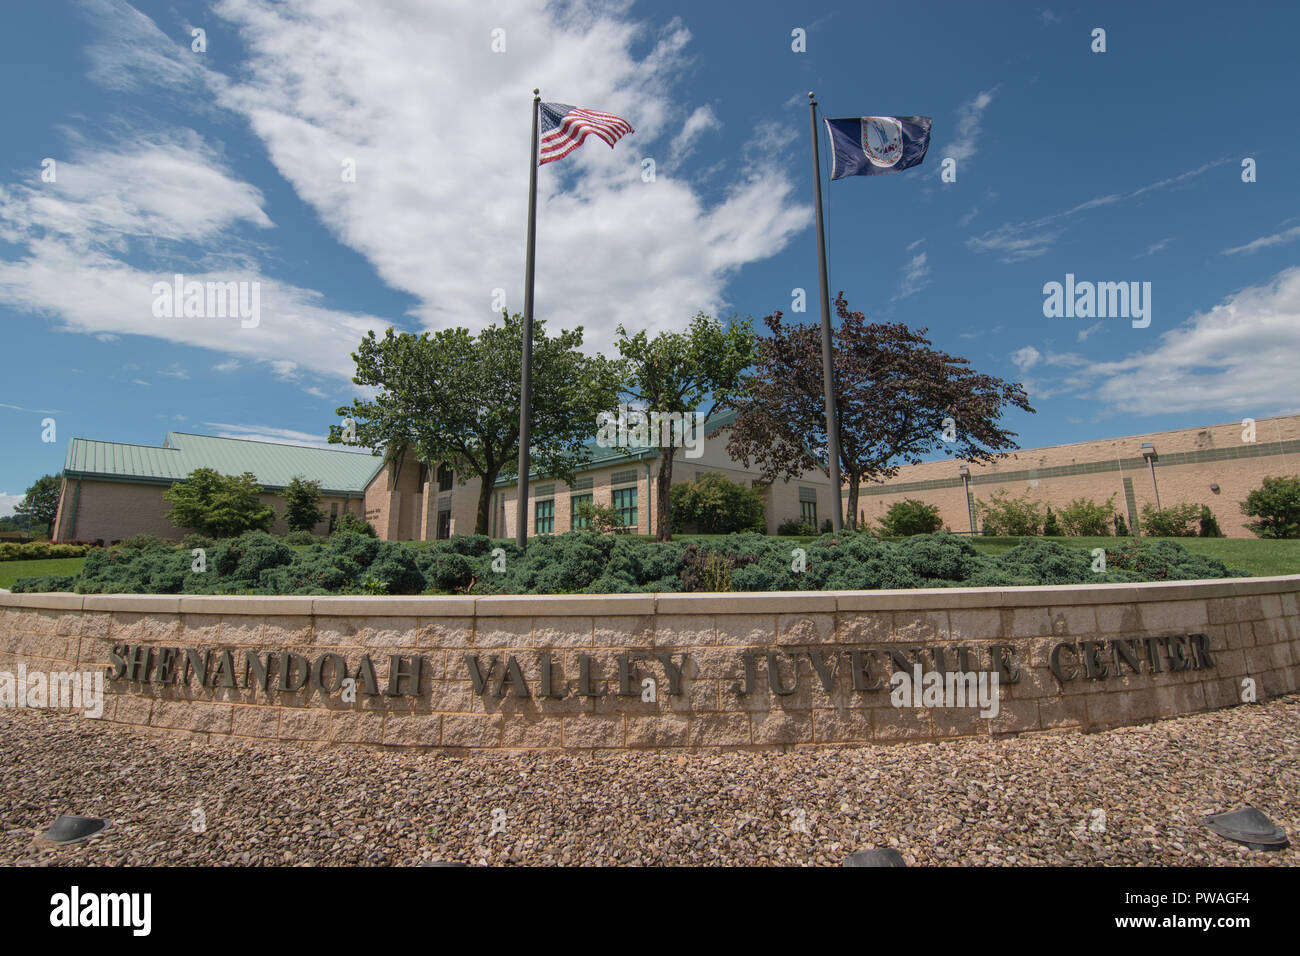 June 24, 2018 Staunton, Virginia USA Shenandoah Valley Juvenile Center alleged abuse scandal of immigrant detainees is looked into by U.S. Office of R - Stock Image